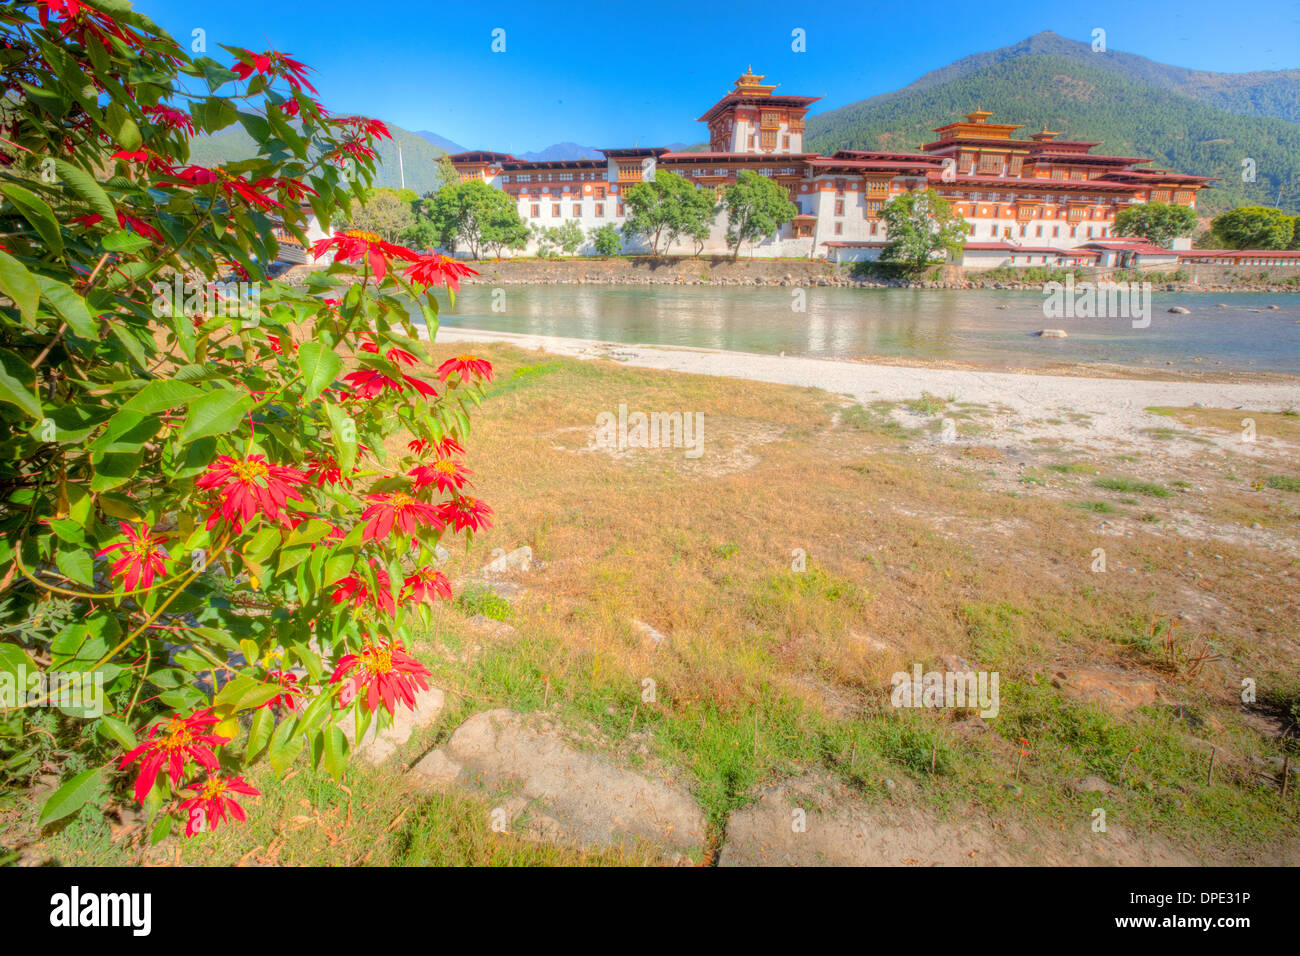 Punakha Dzong Monastery Bhutan Himalaya Mountains Built originally in 1300s Sacred site Bhutanese people on Phochu & Mochu River - Stock Image